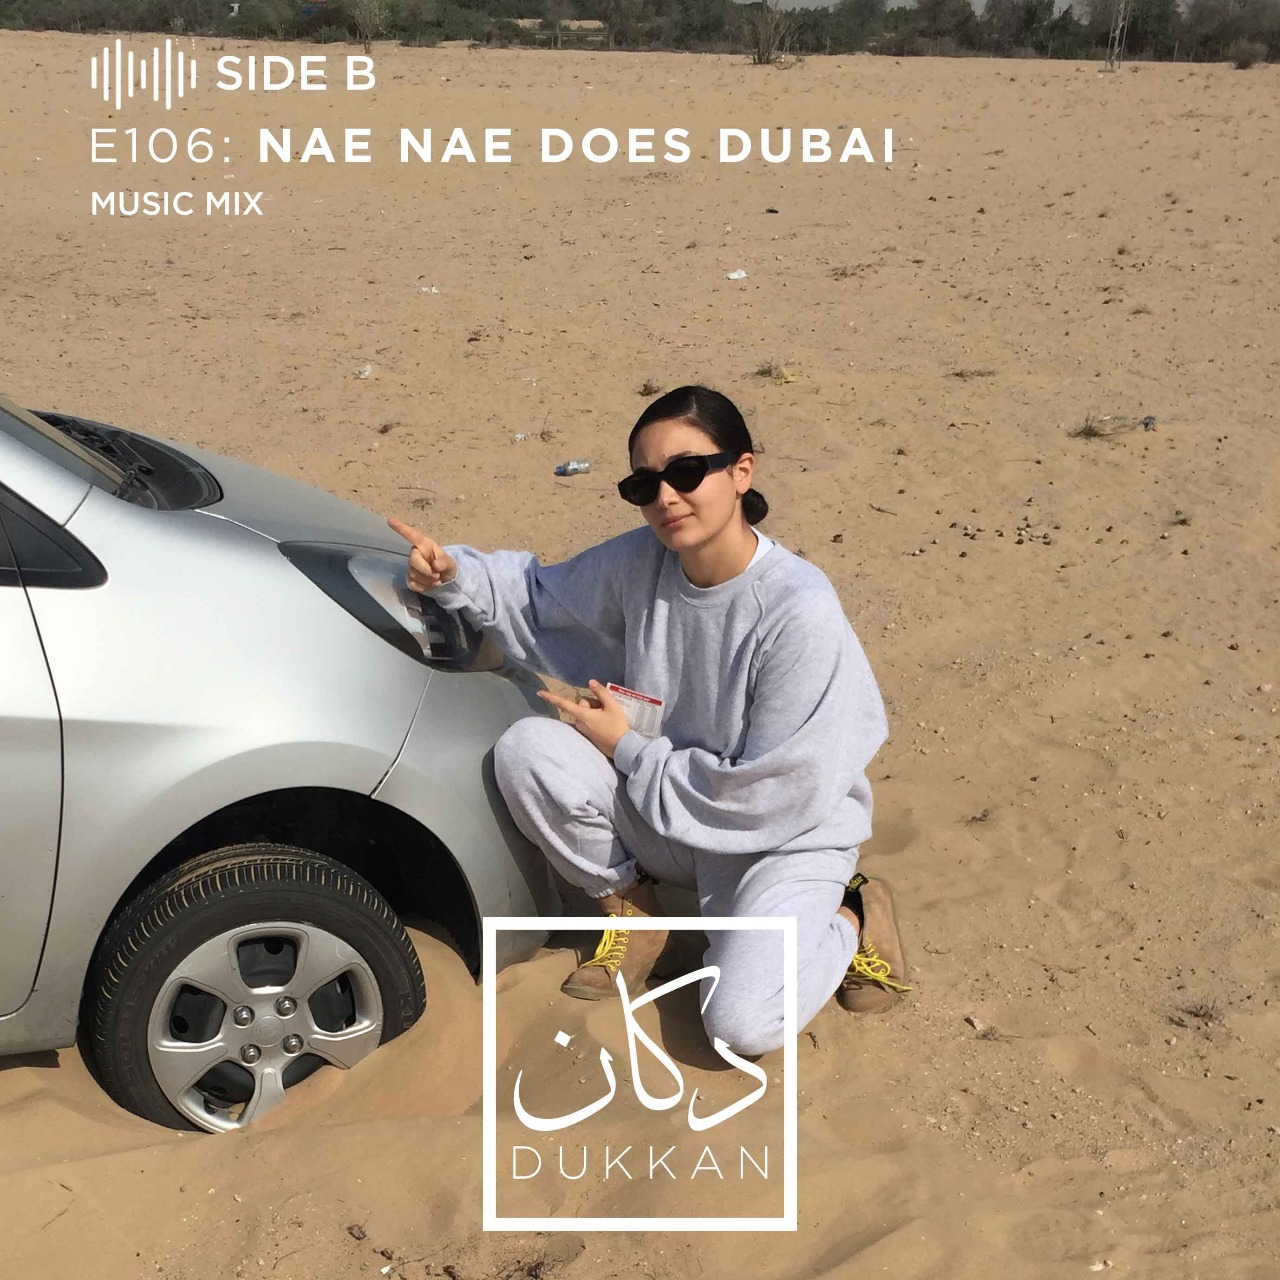 E106 -Side B: Nae Nae Does Dubai (Music Mix by Dub Poets Collective)